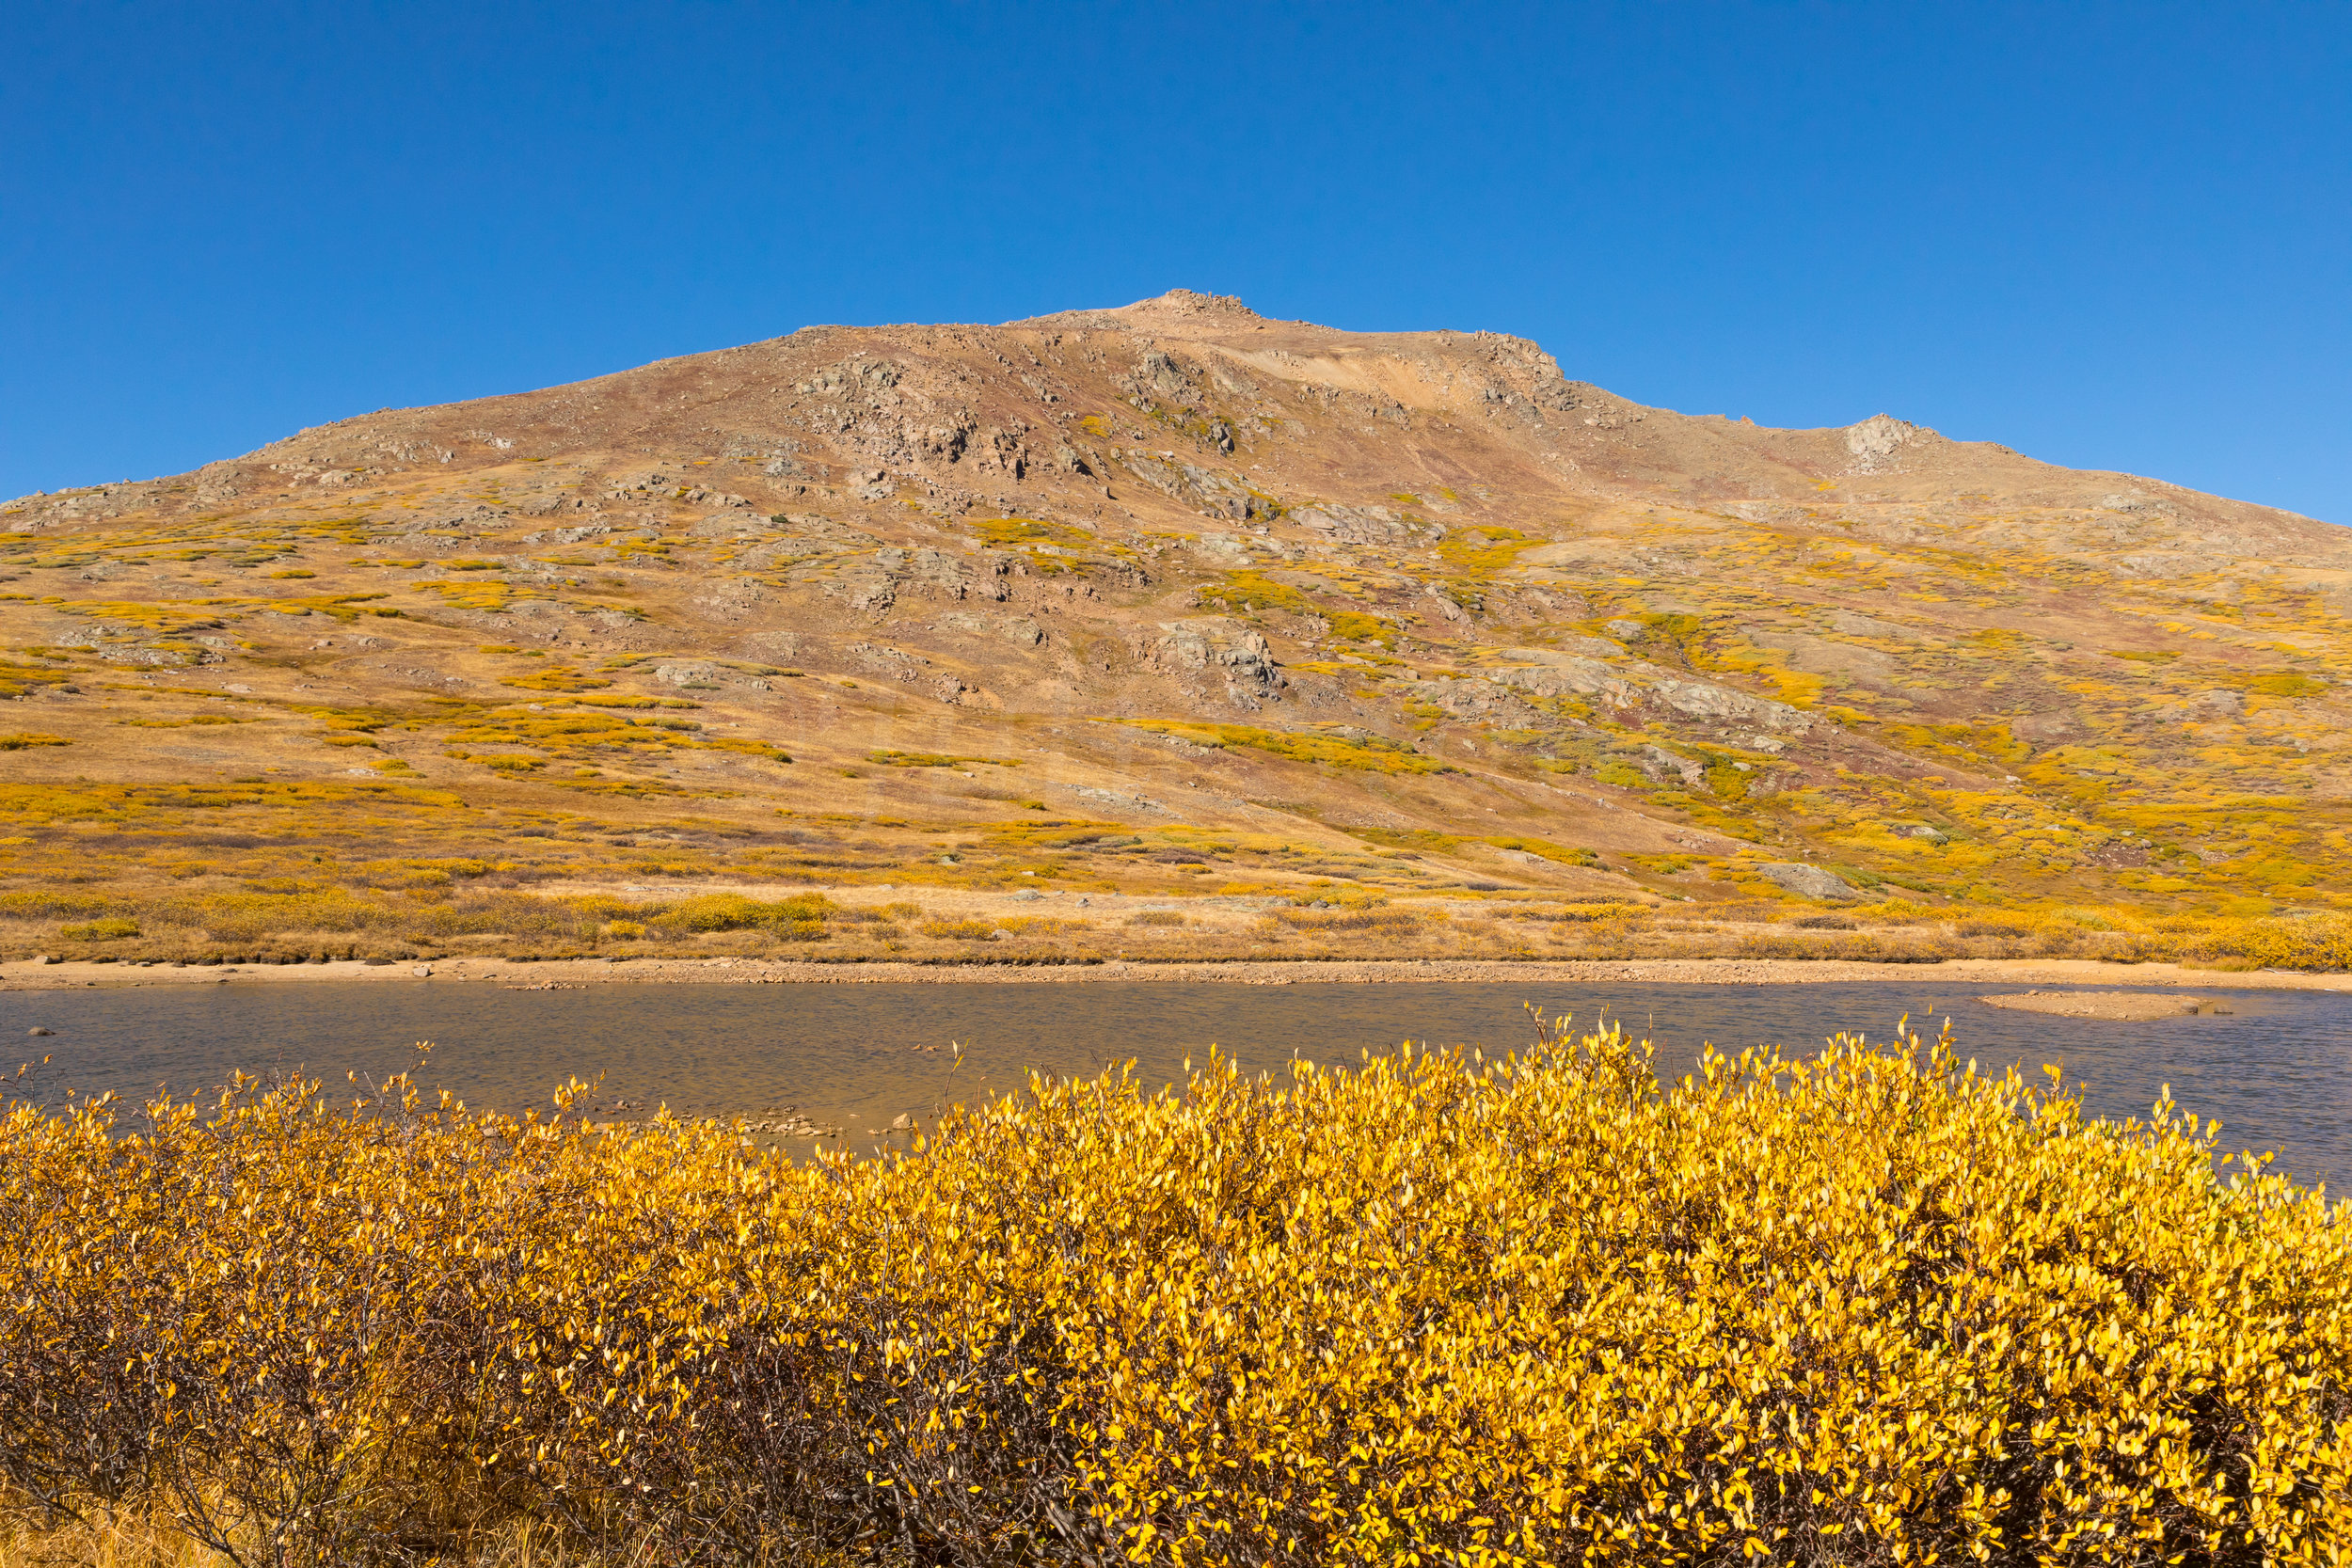 Independence Pass, Image # 1574